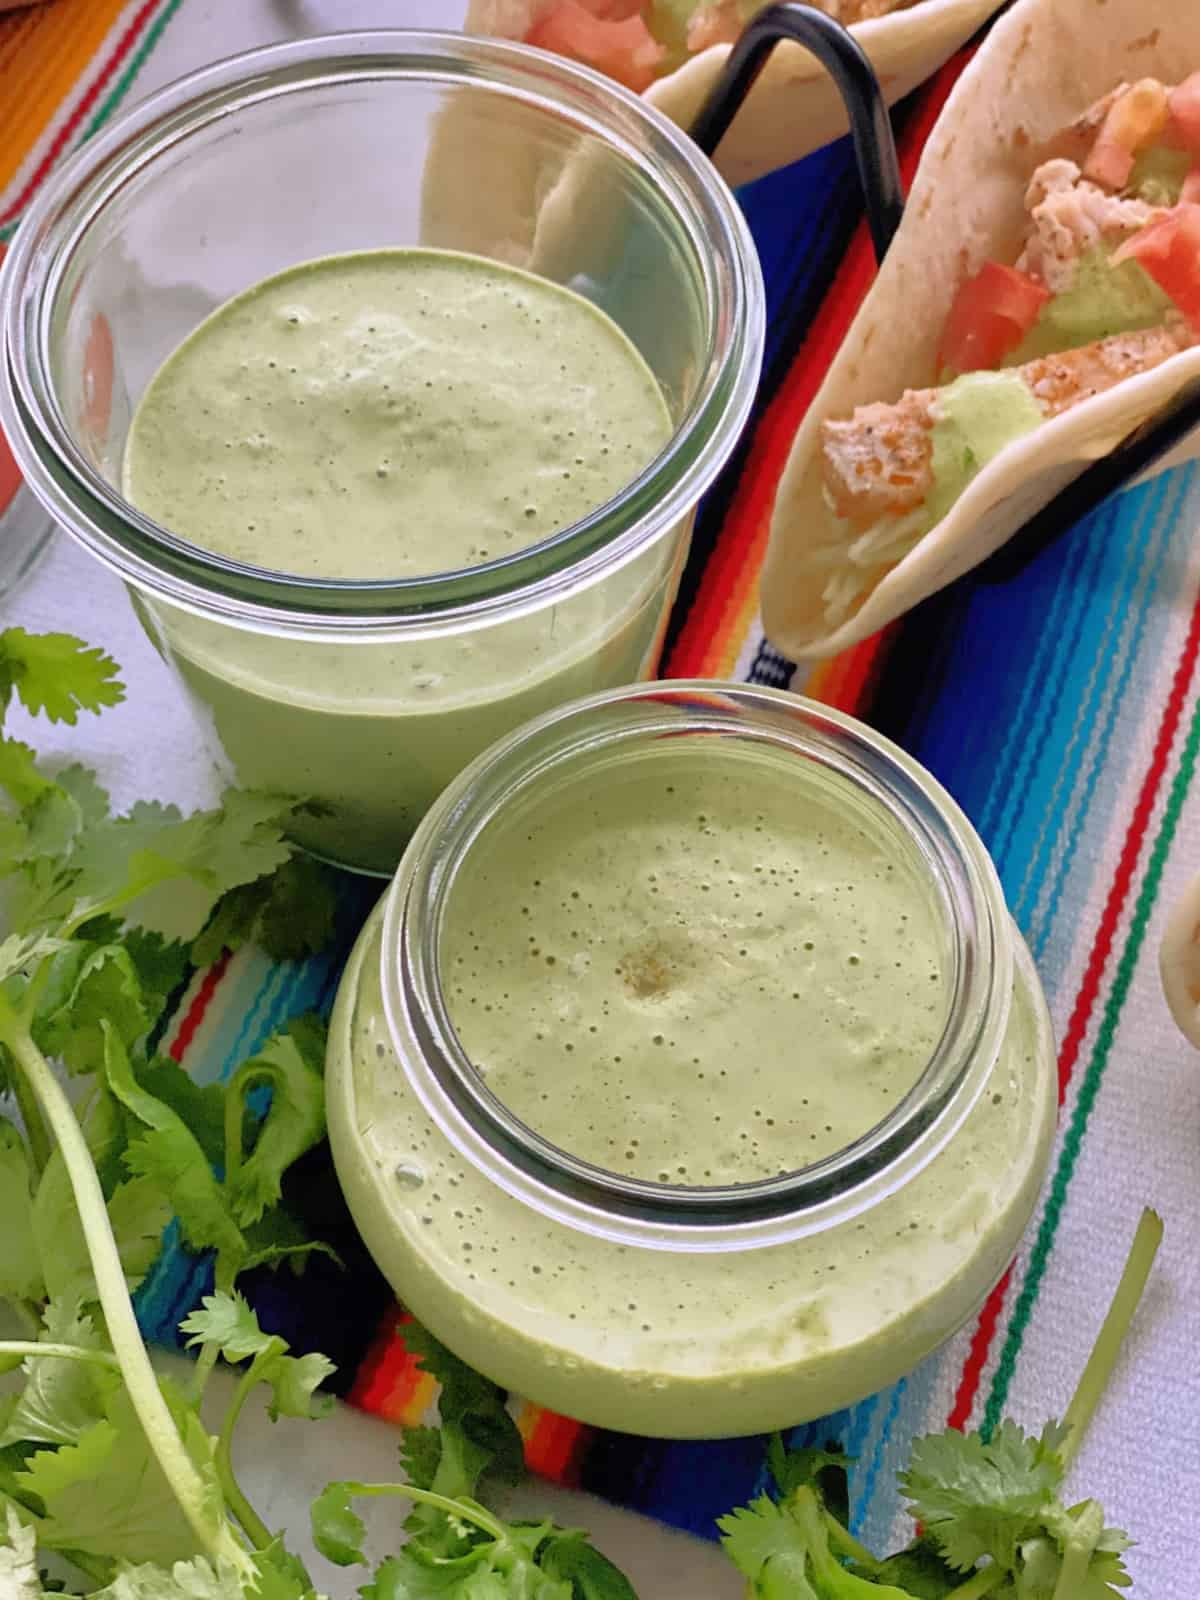 two jars of creamy light green liquid on colorful tablecloth with fresh cilantro and fish tacos.